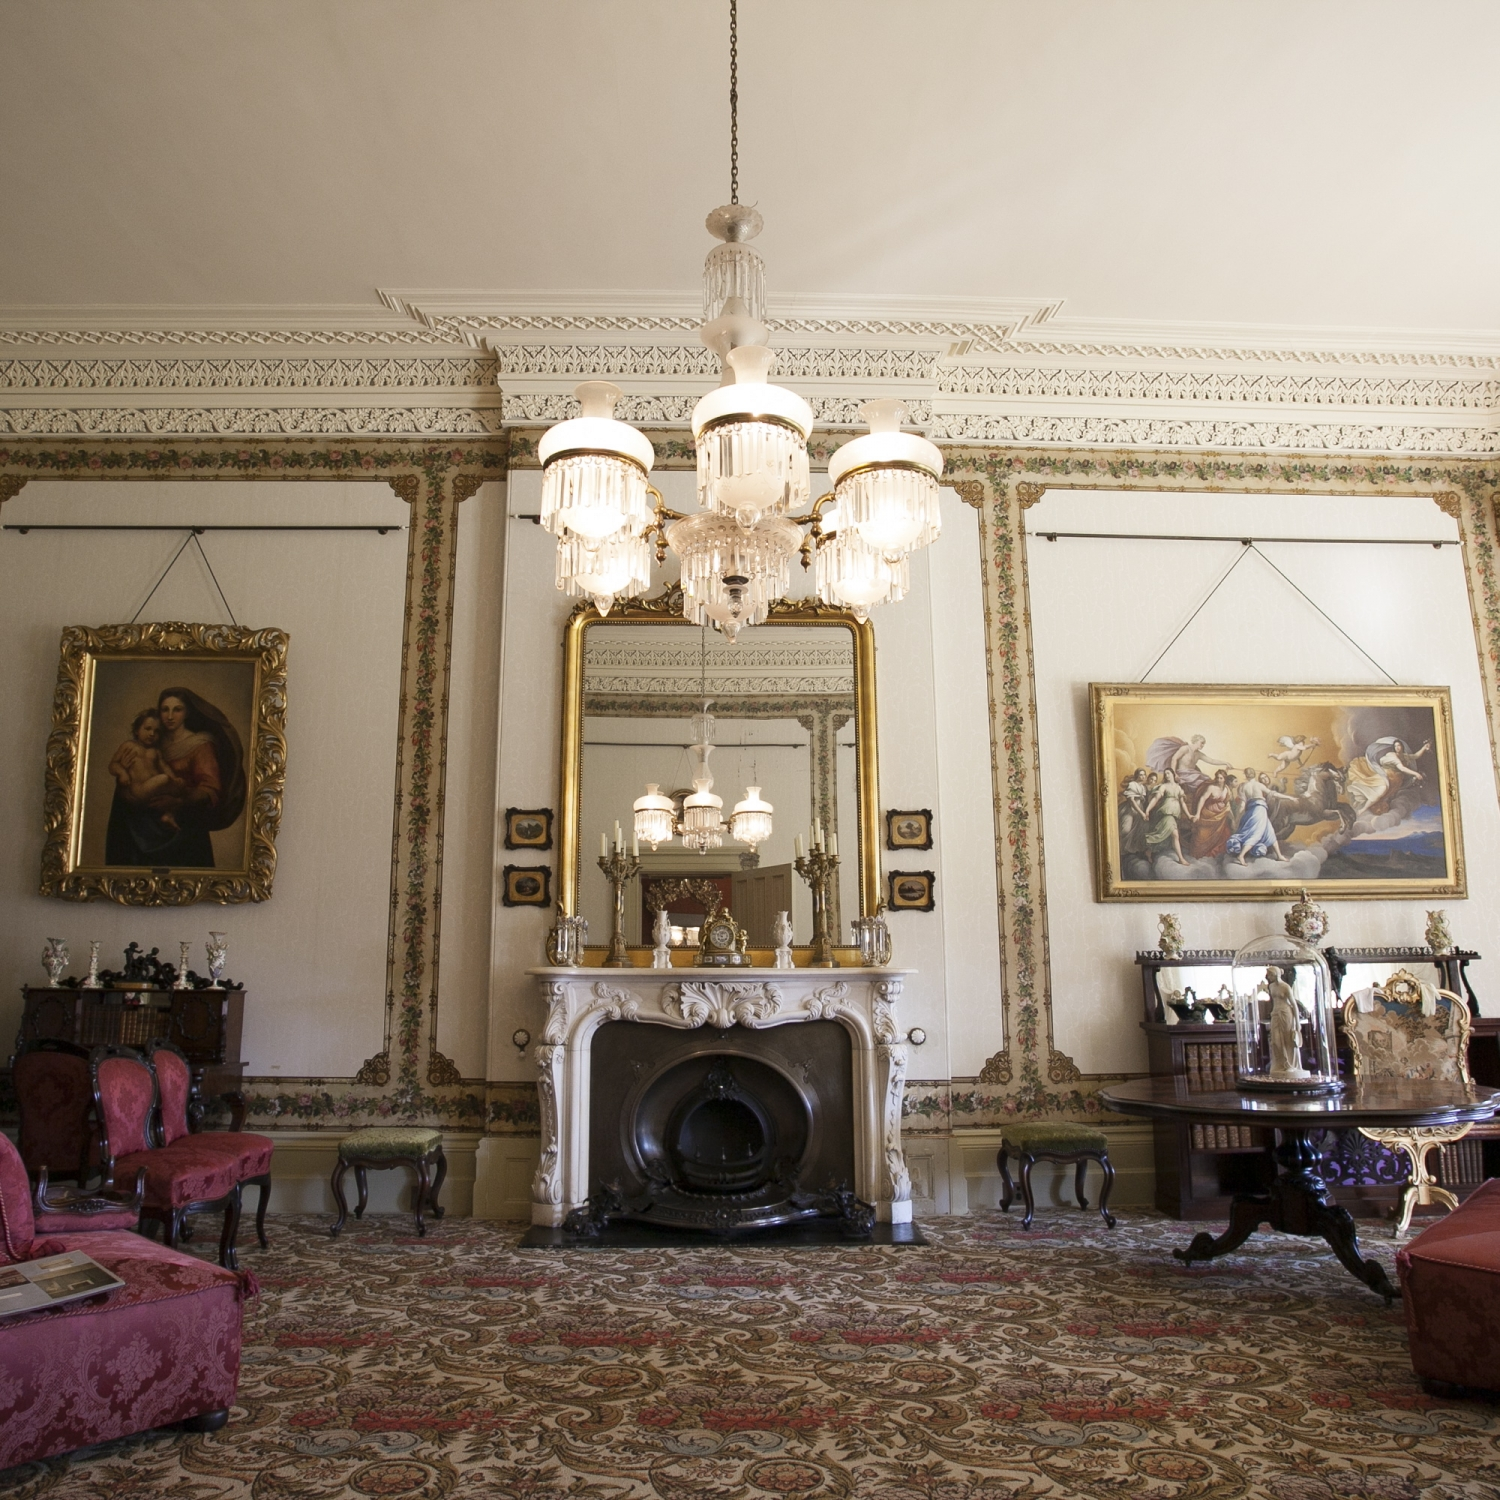 Drawing room with furniture and chandelier, reflecting in mirror above fireplace.